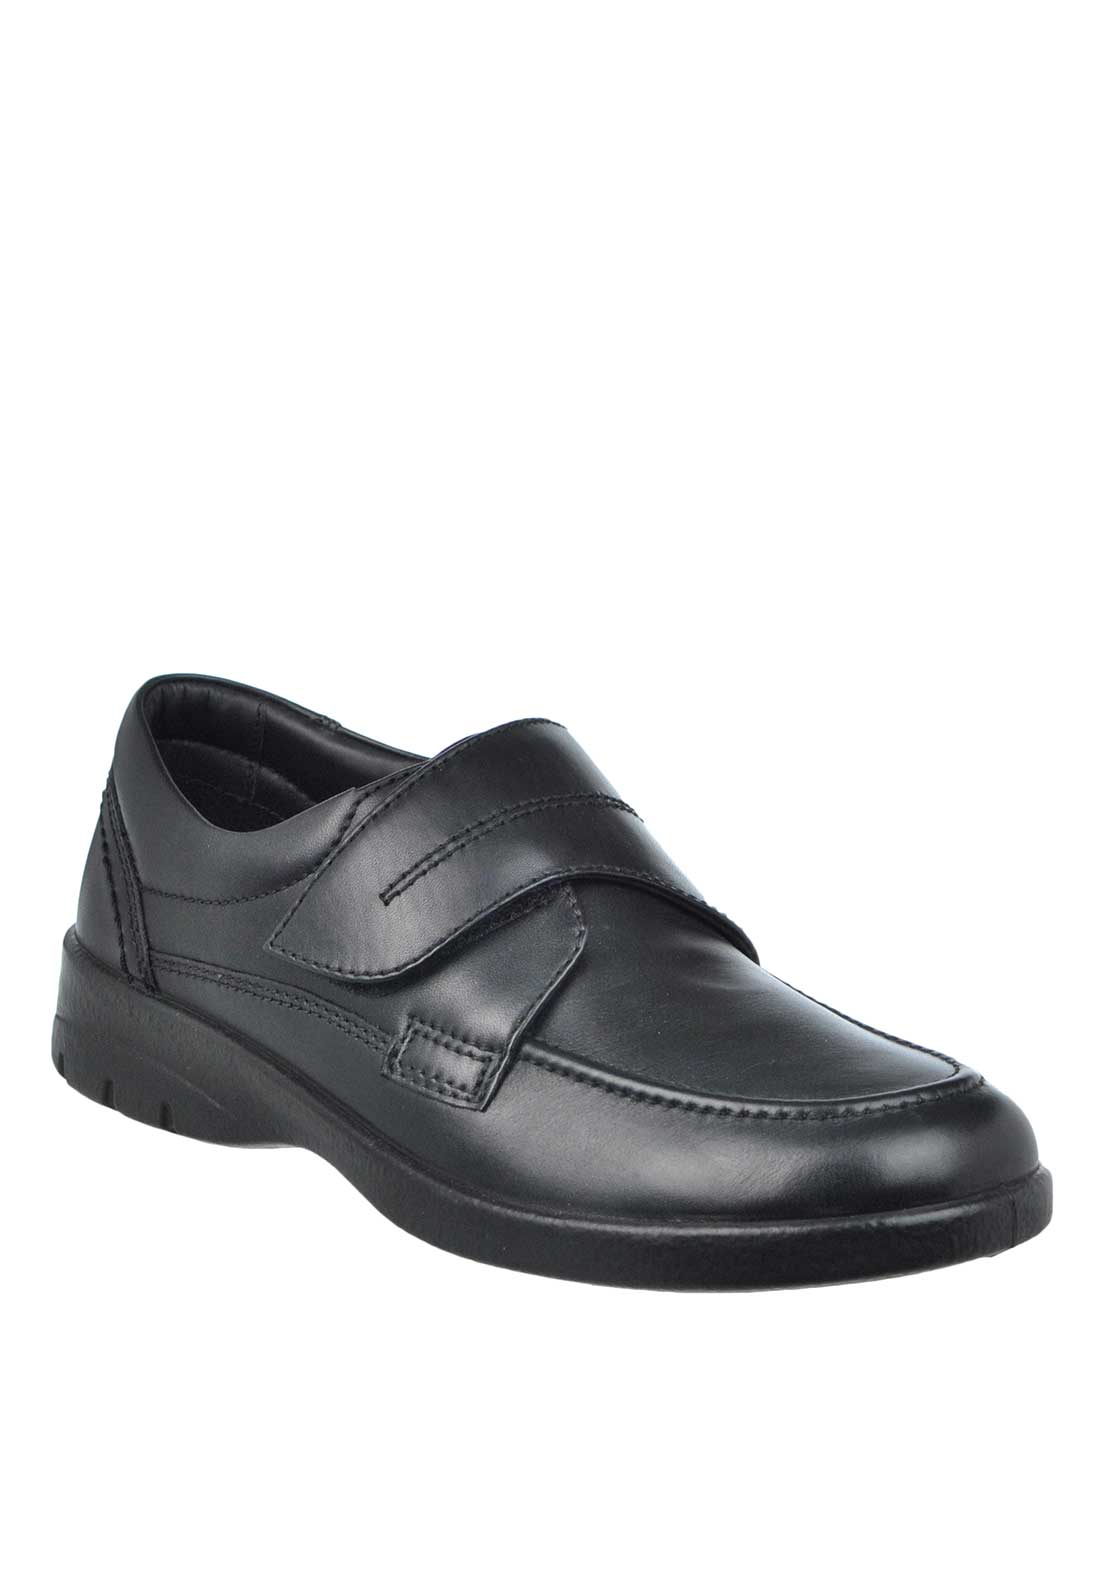 Padders Solar Velcro Strap Leather Shoe, Black